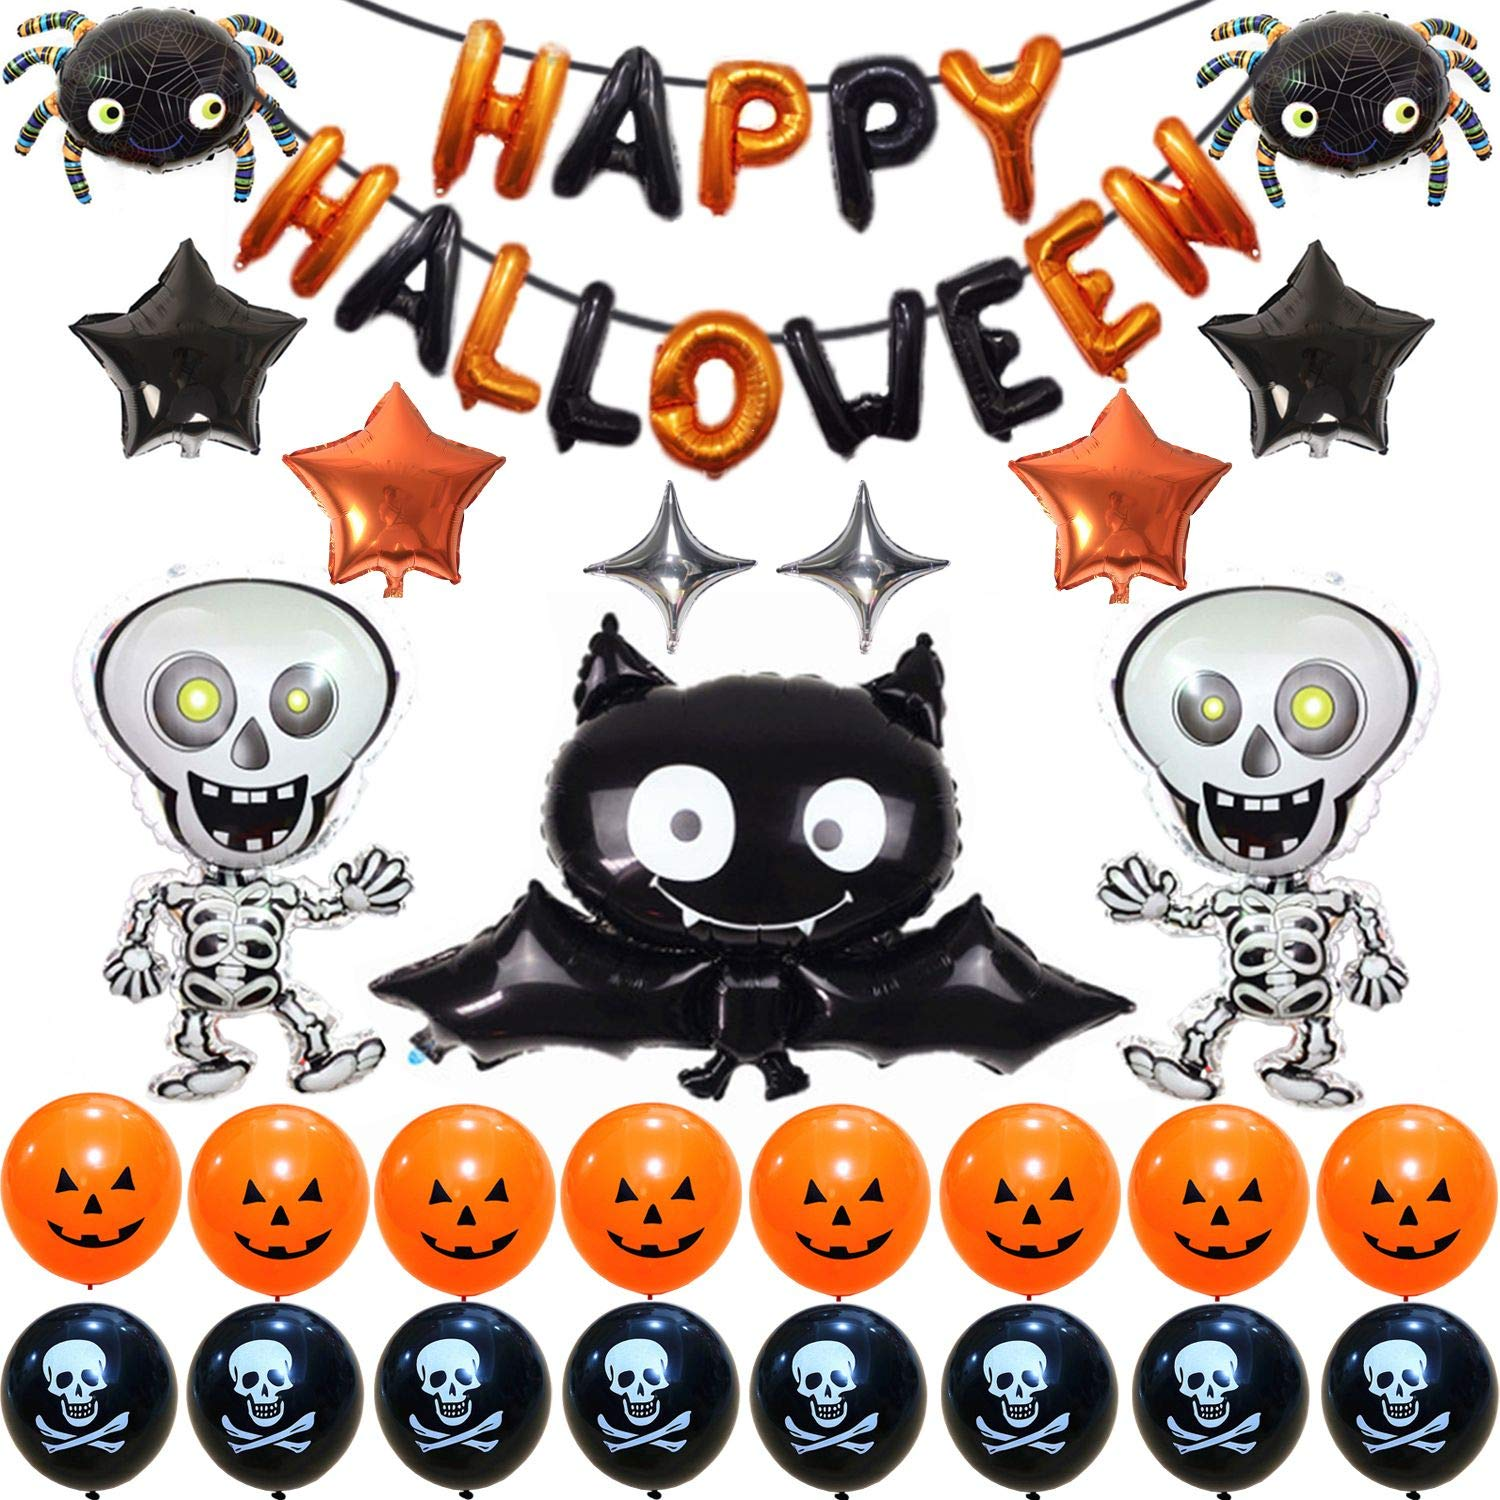 Cute Cartoon Bat Halloween Party Supplies, Halloween Decoration Set With Bat & Skeleton Balloons and Five & Four-Pointed Star Foil Balloons Pumpkin And Pirate Latex Balloons, Full Party Set 41PCS For Halloween Party